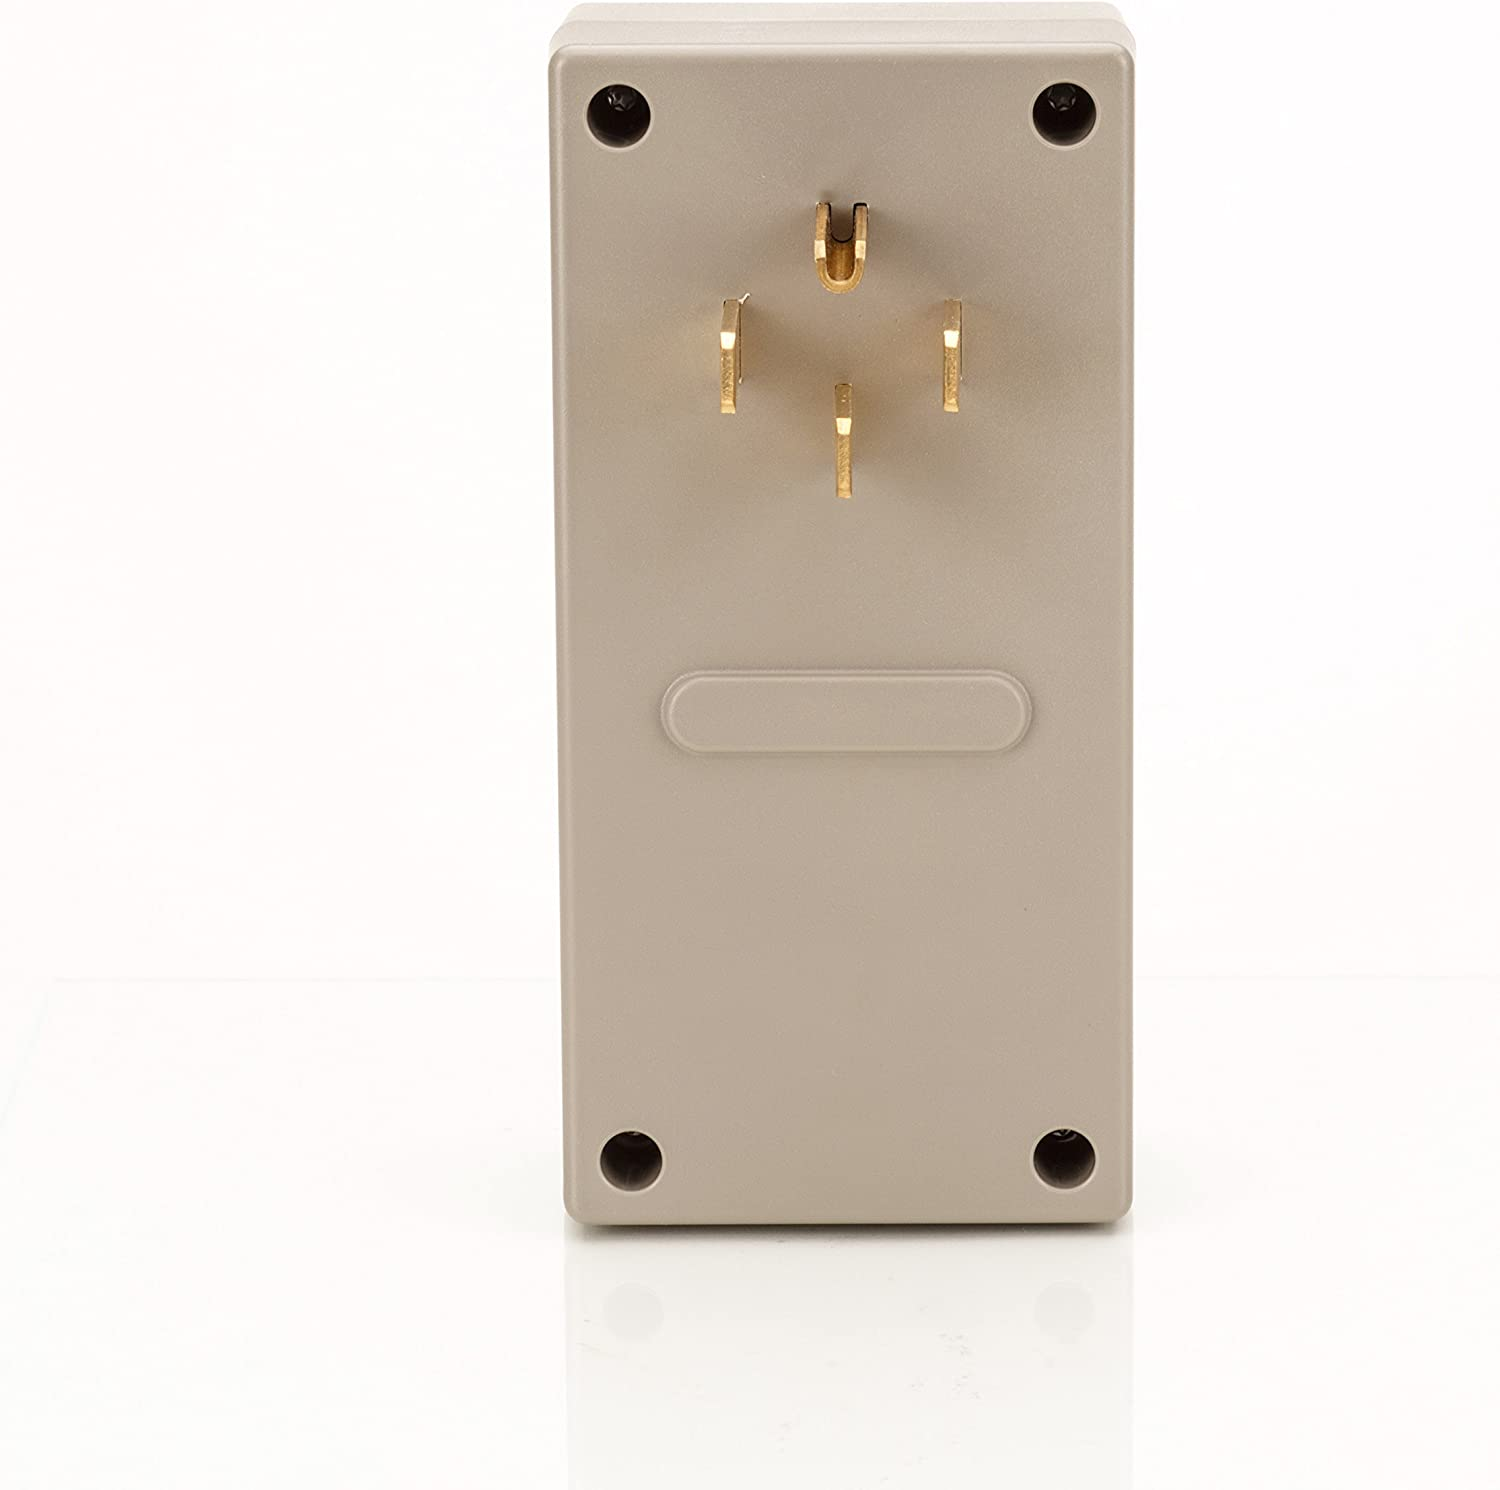 Fire Agreen Electric Auto Stove Shut-off Safety Device (4 Prong) - As Seen On Shark Tank